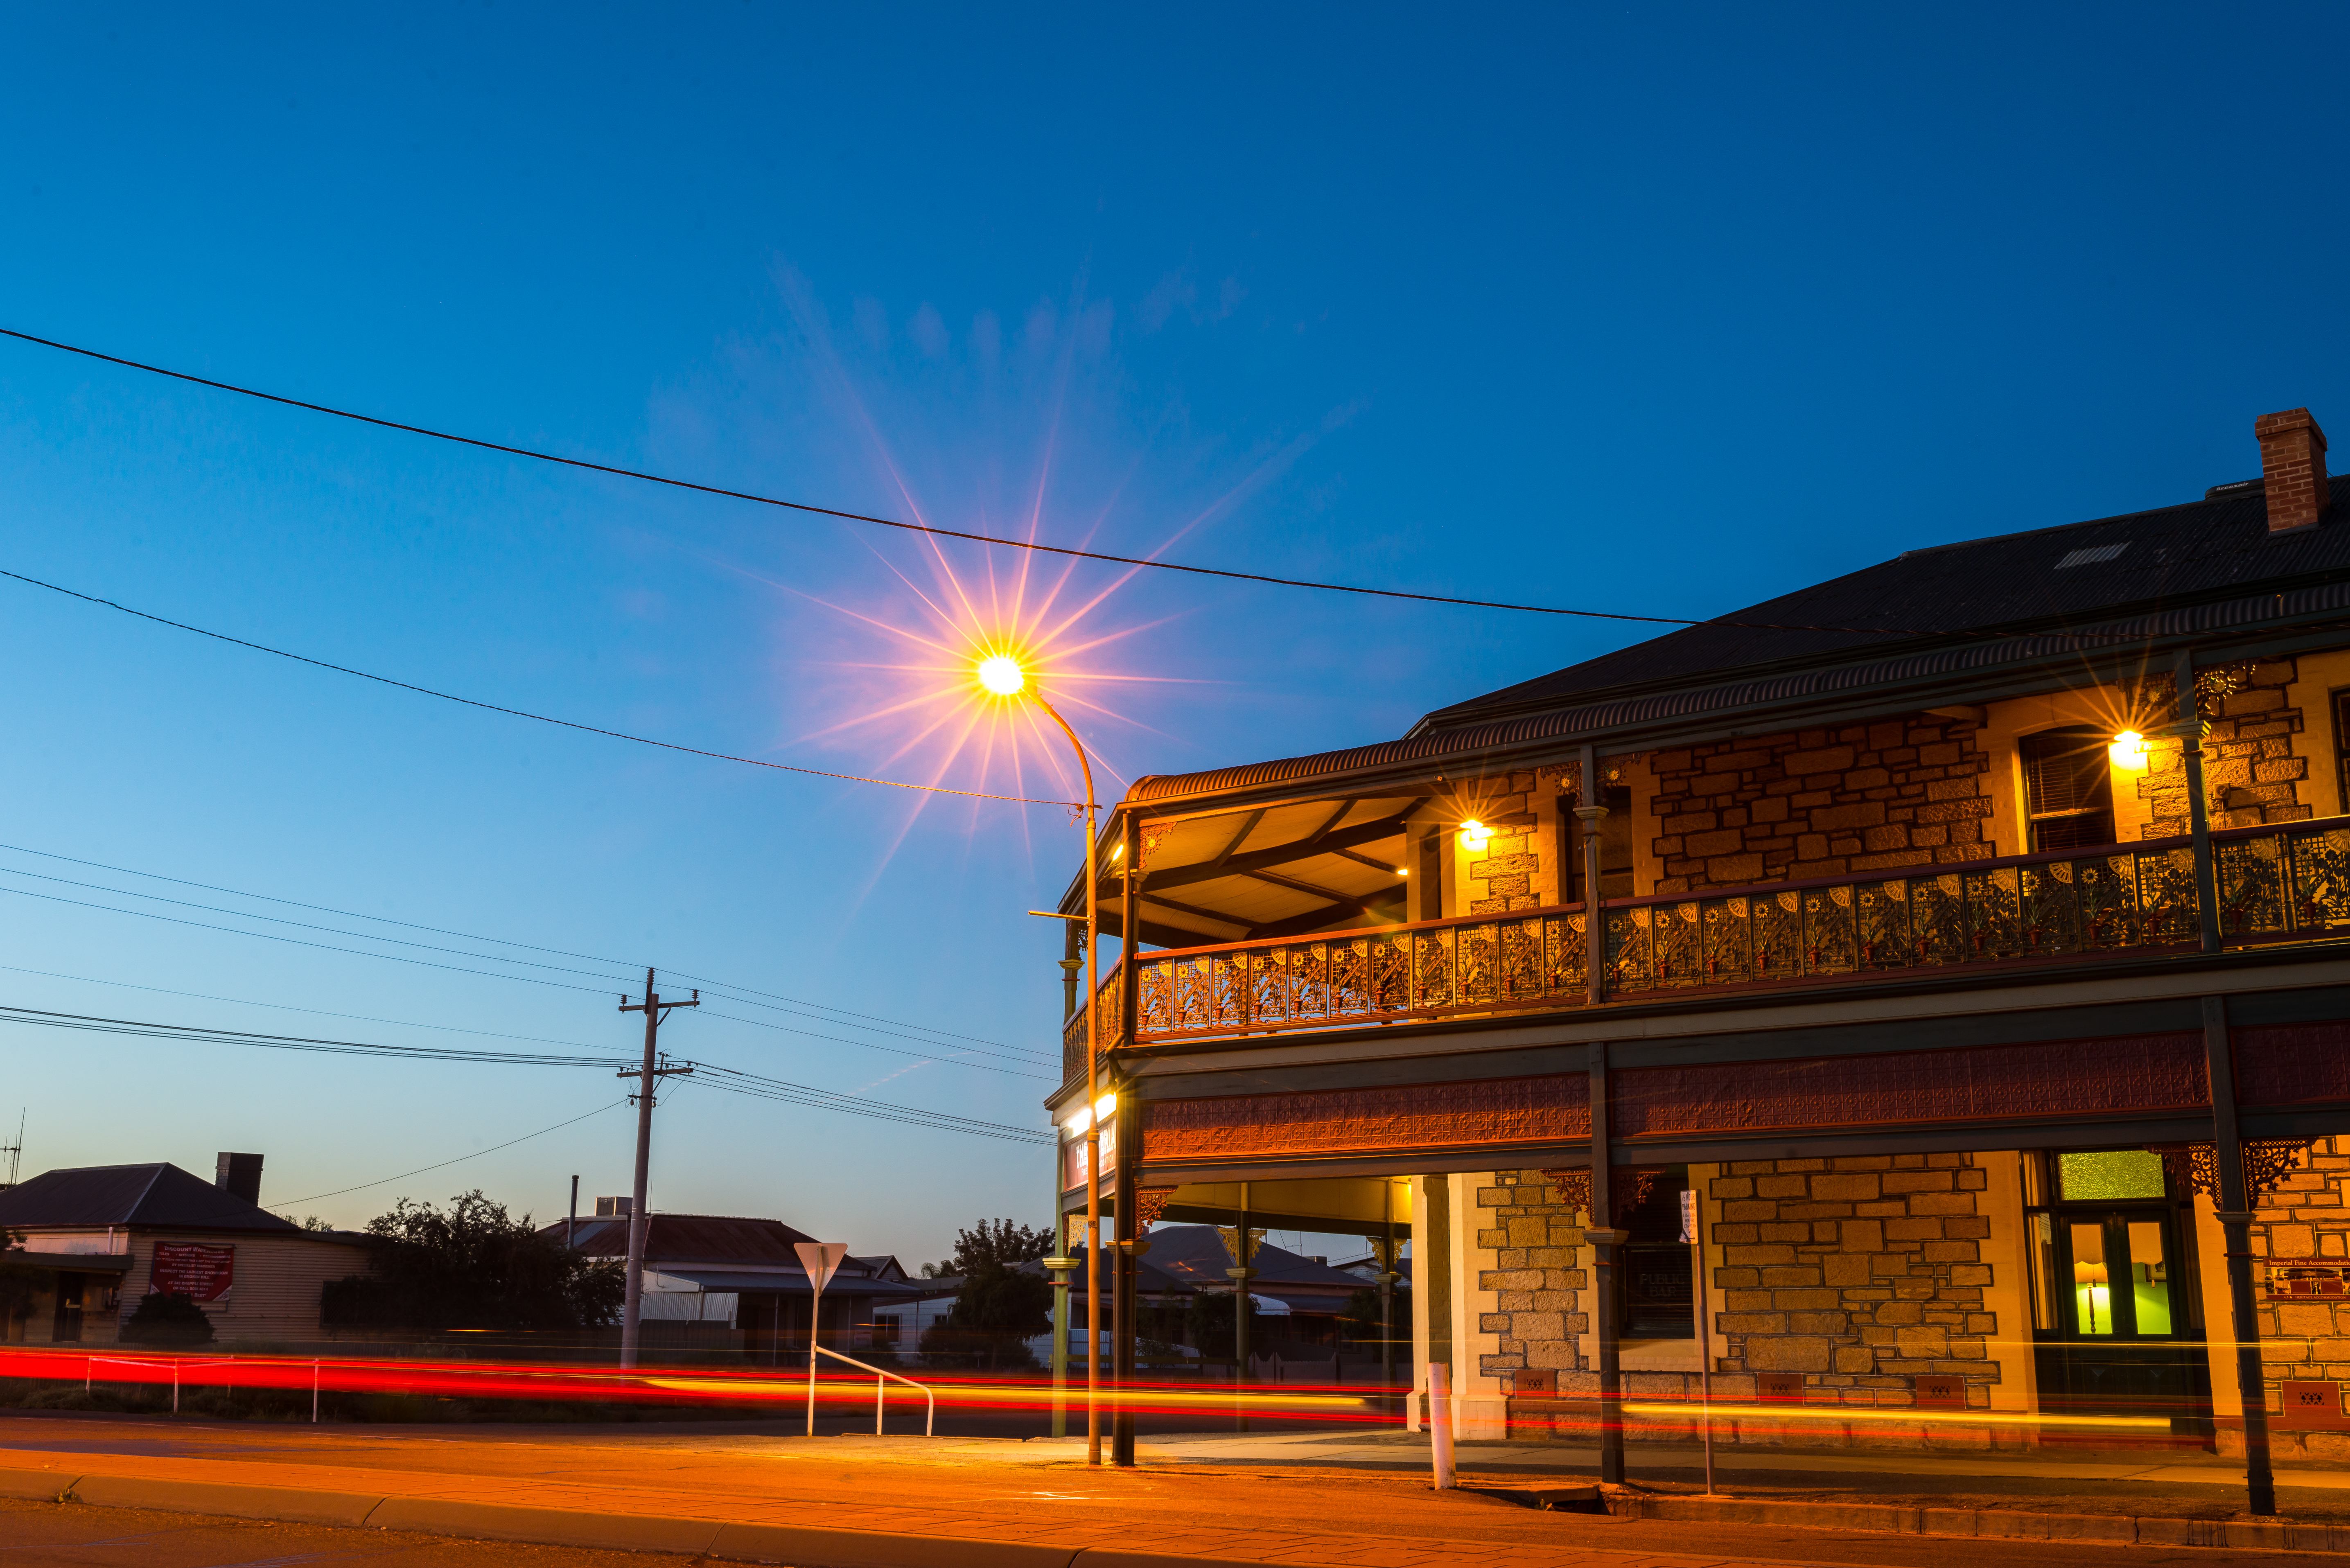 BrokenHill_Architecture_Hotel_at_Night_Lattice Work